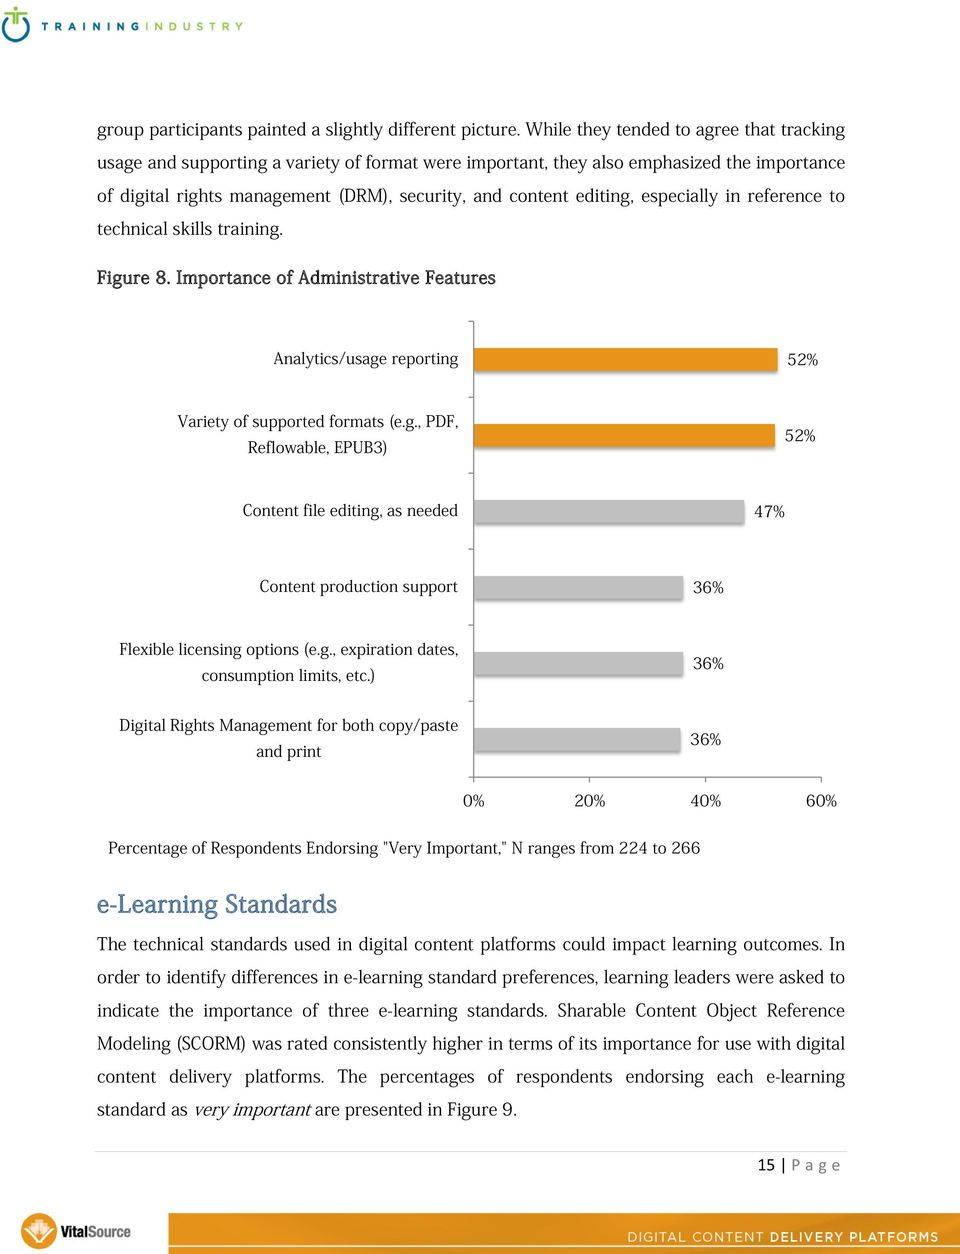 editing, especially in reference to technical skills training. Figure 8. Importance of Administrative Features Analytics/usage reporting 52% Variety of supported formats (e.g., PDF, Reflowable, EPUB3) 52% Content file editing, as needed 47% Content production support 36% Flexible licensing options (e.